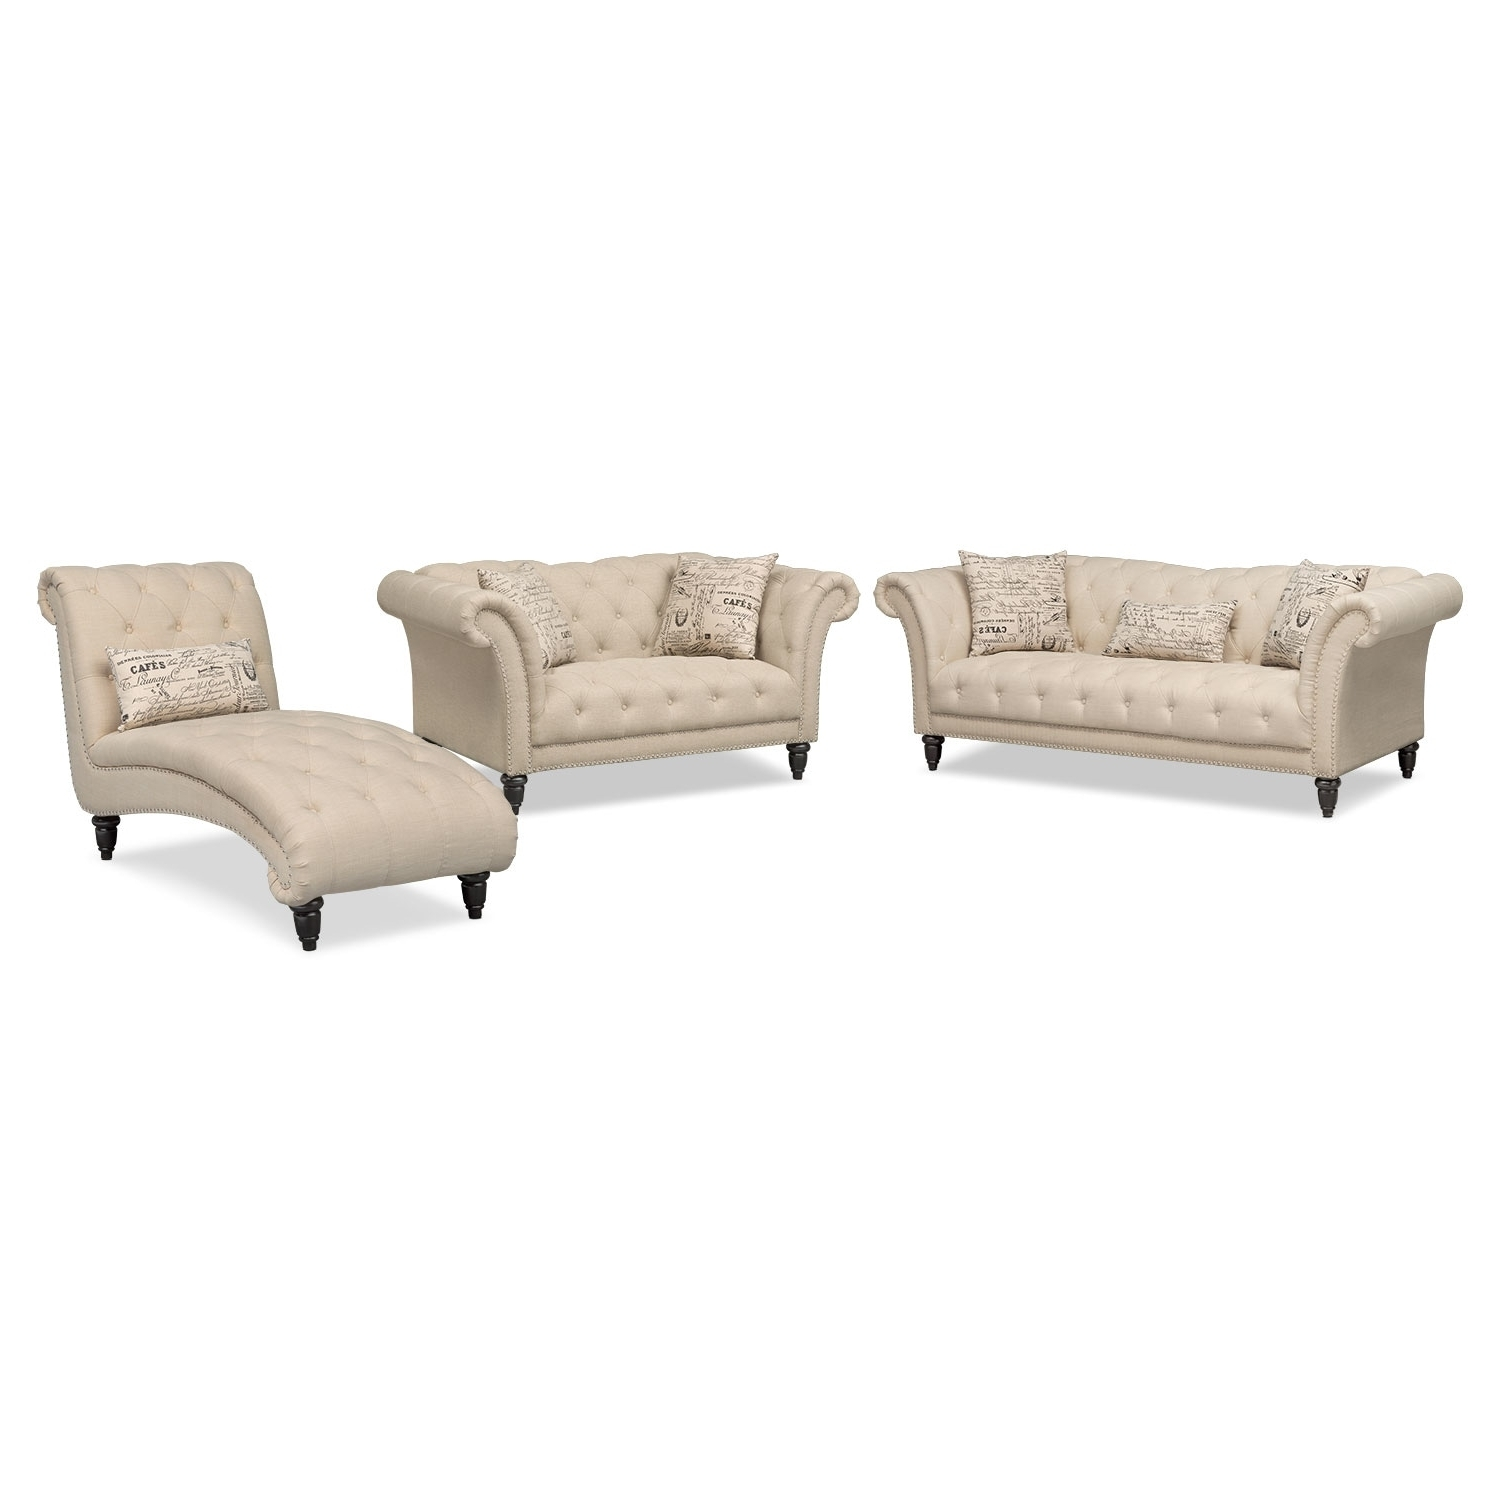 American Signature Pertaining To 2017 Loveseat Chaises (View 9 of 15)